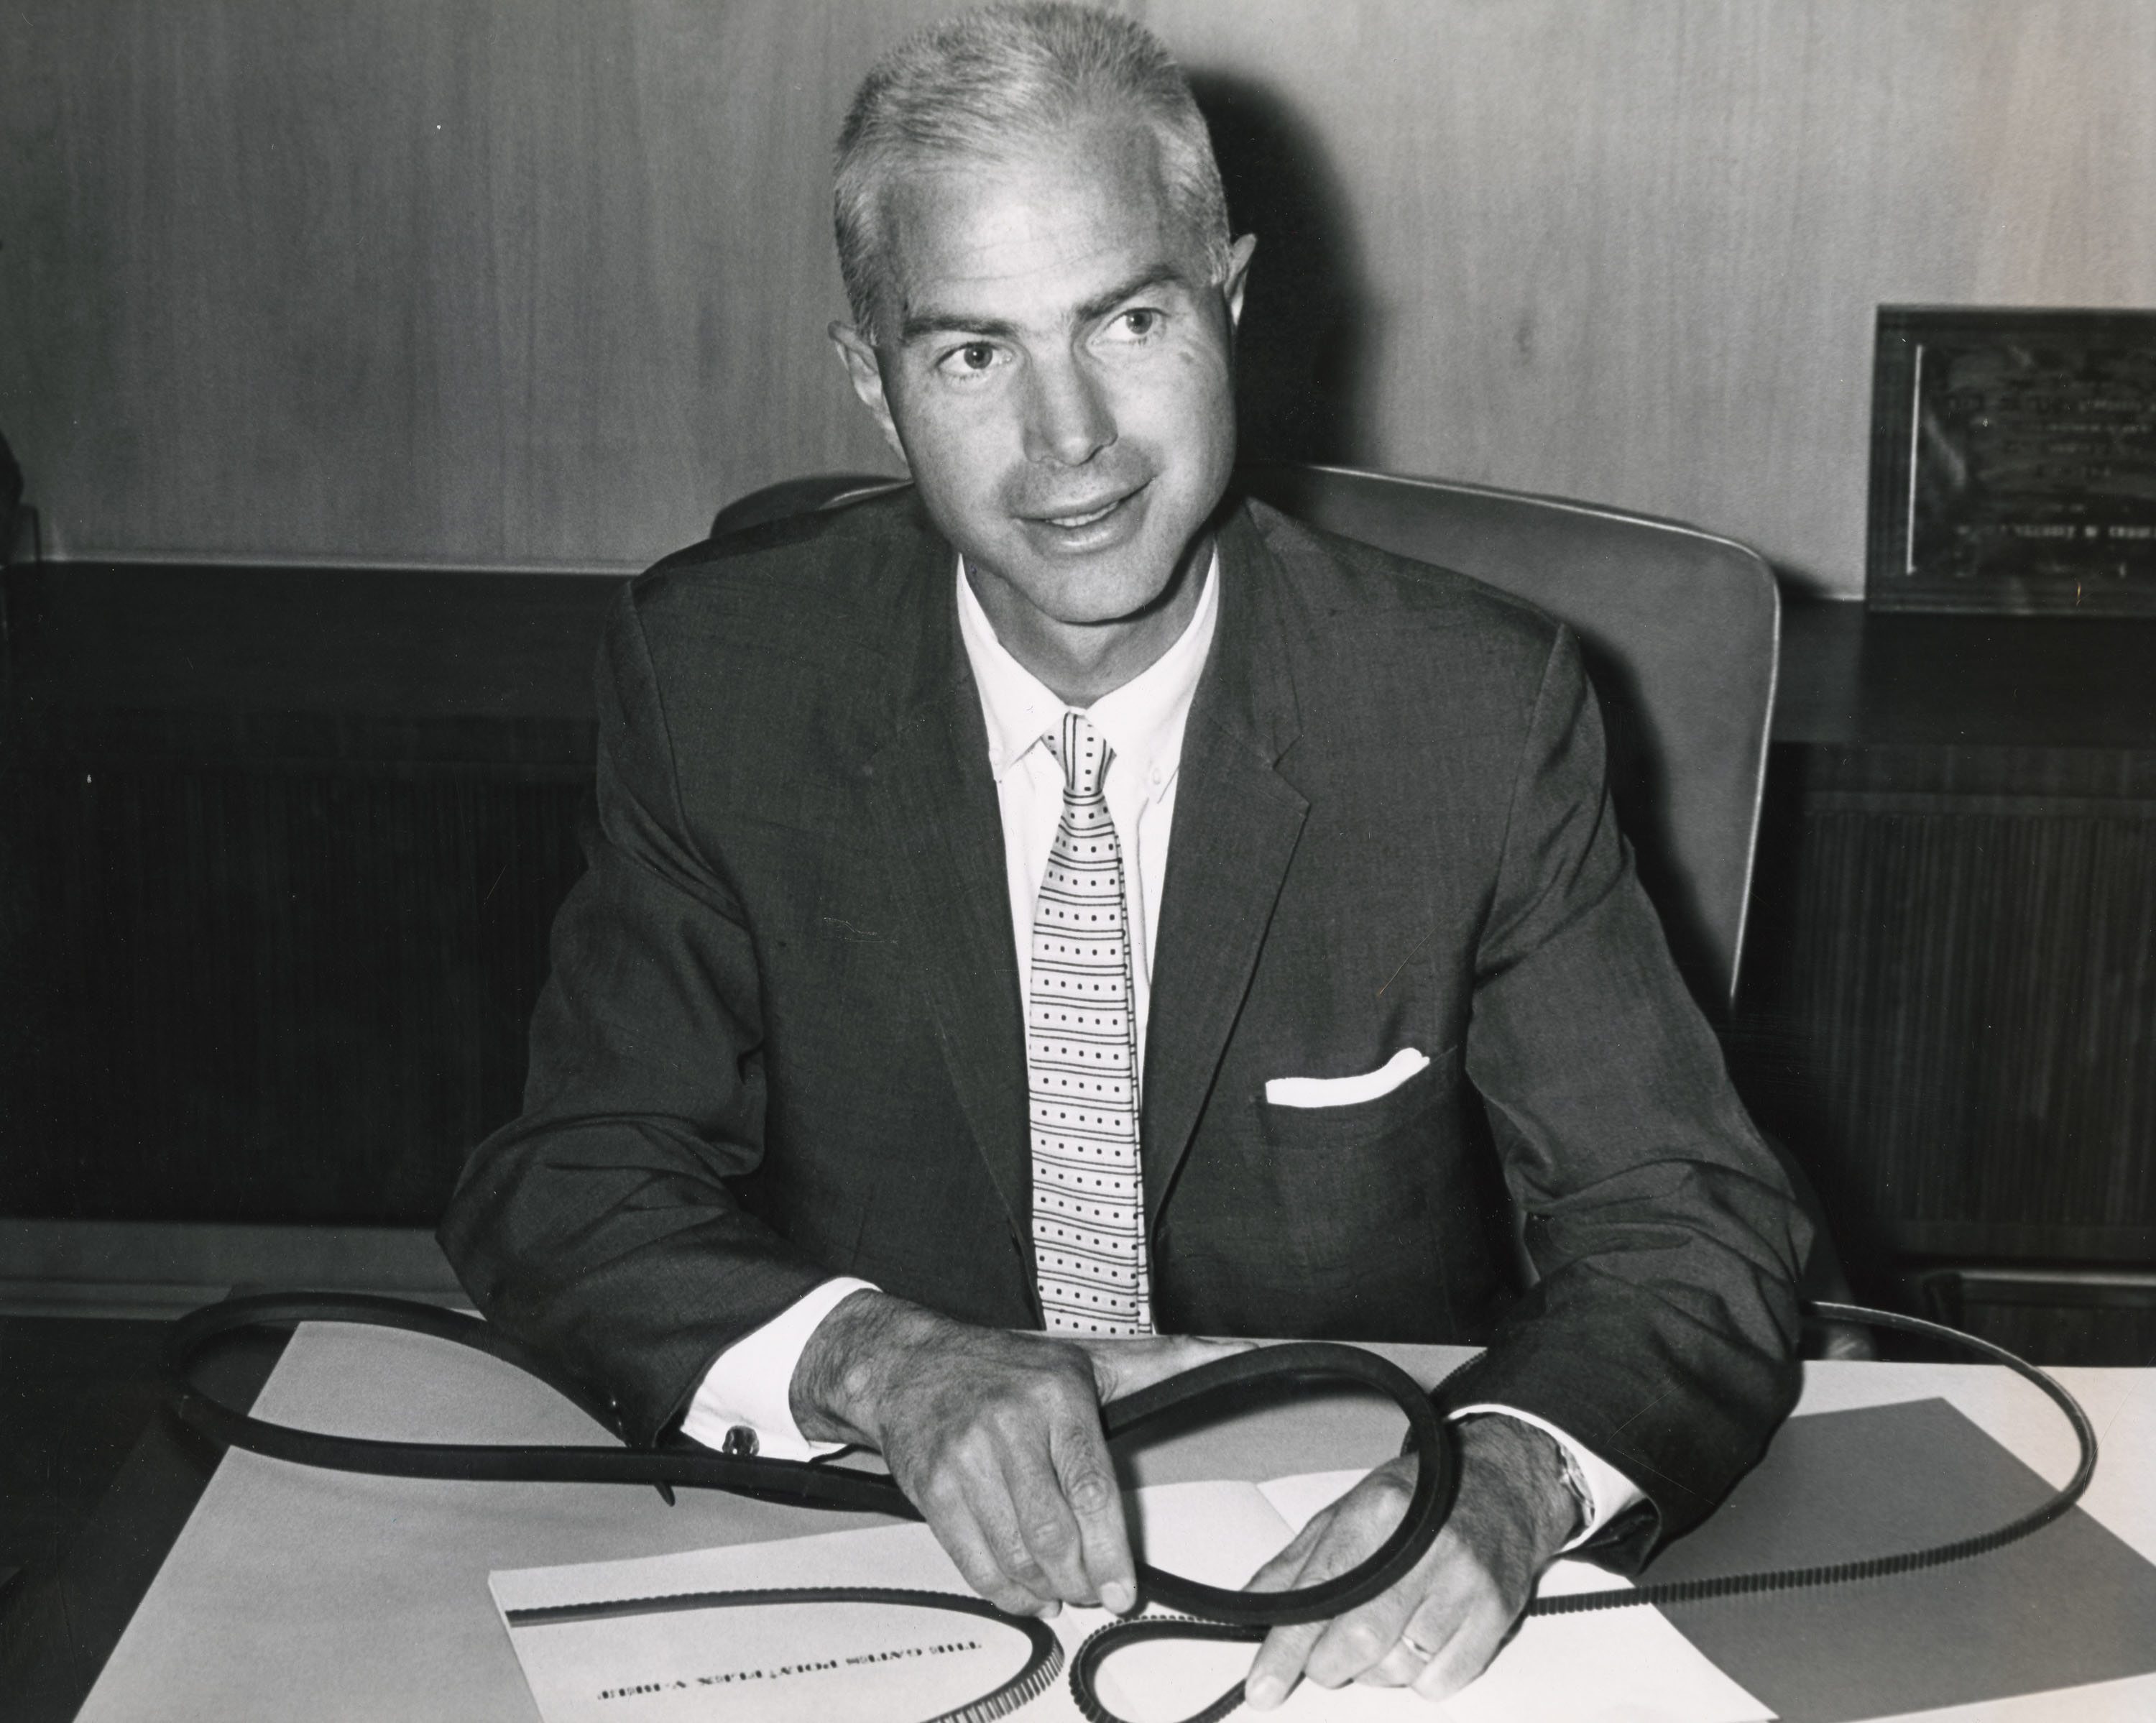 Charles C. Gates May 27, 1921, to August 28